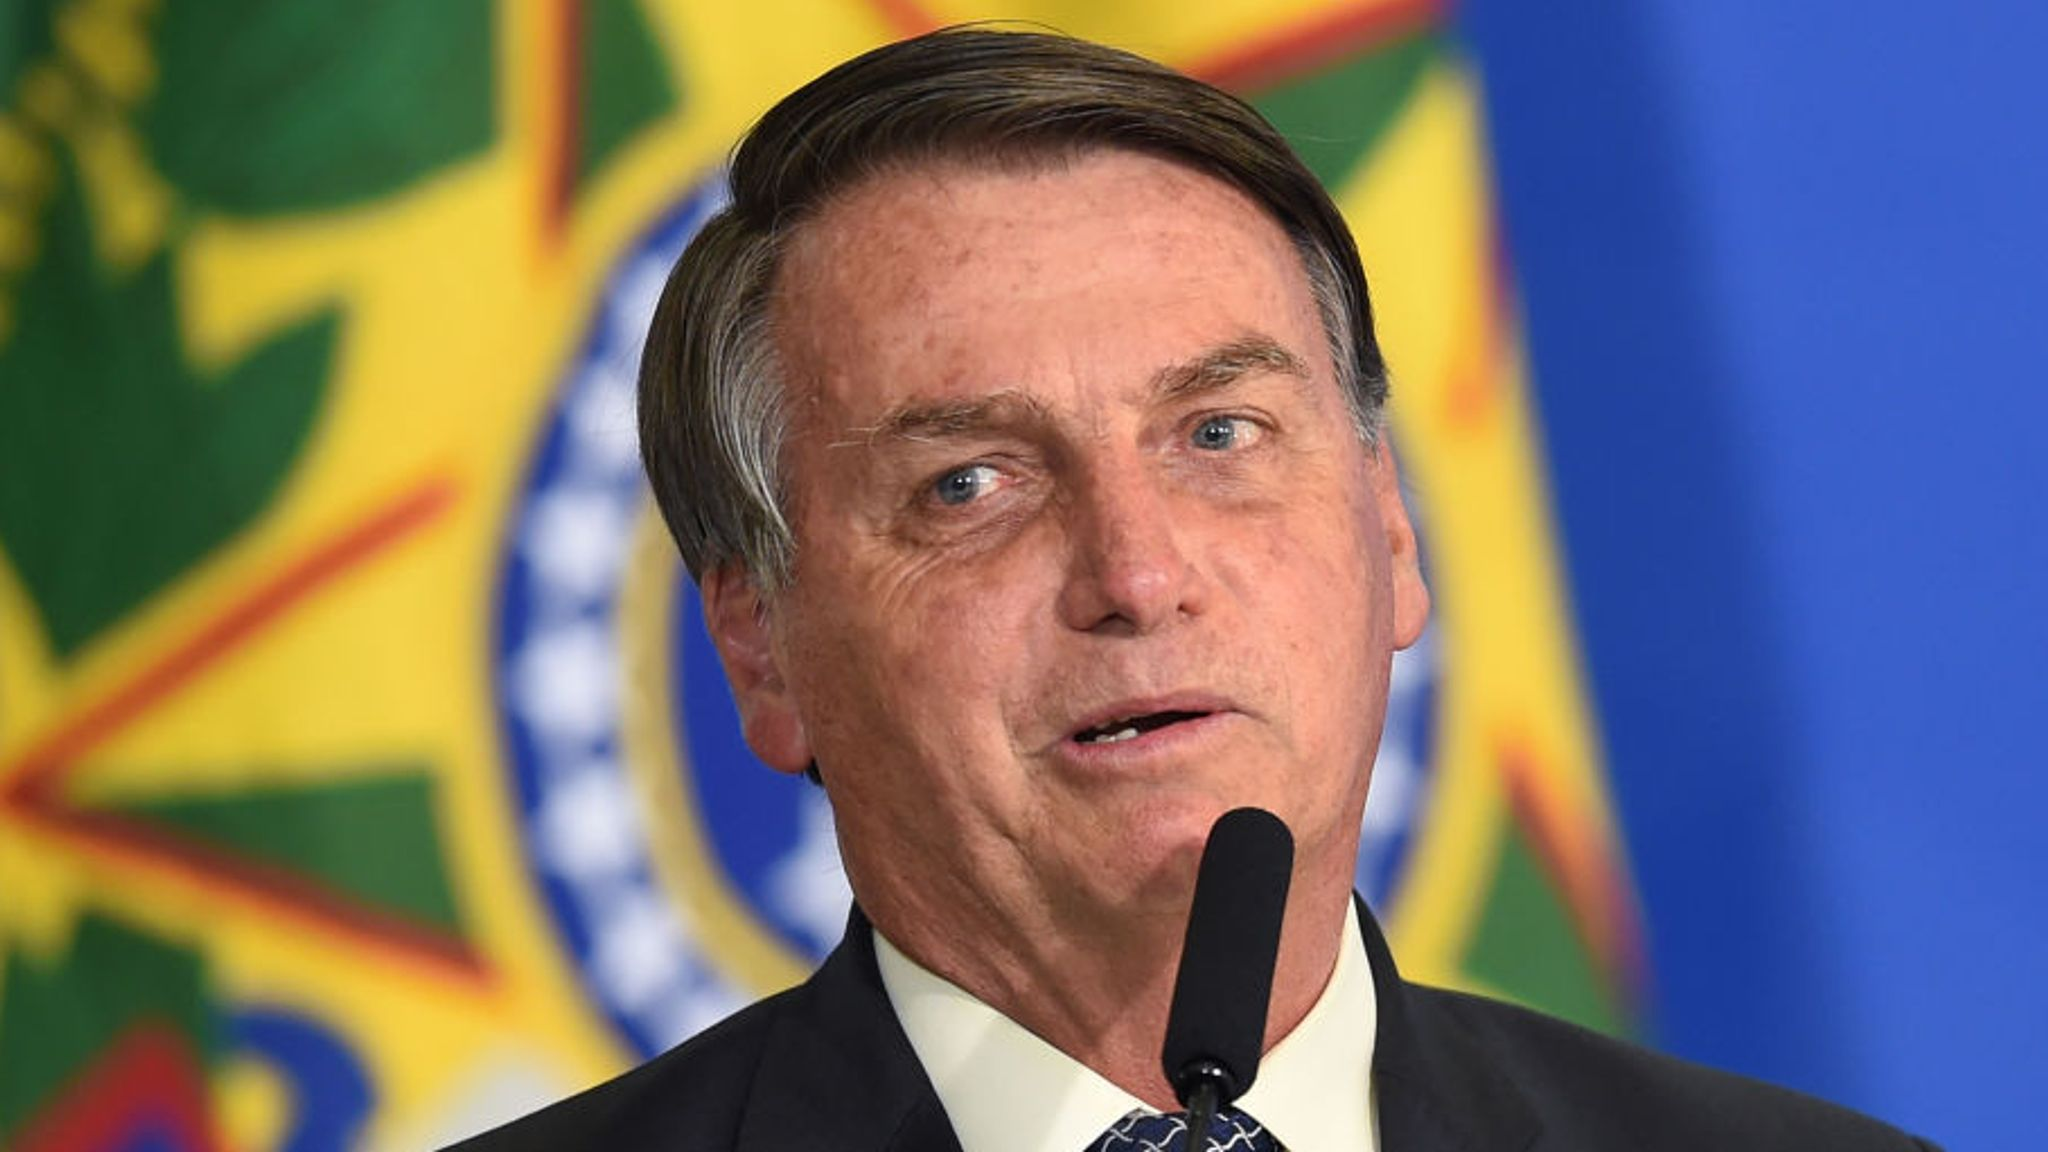 , The Hague may indict Jair Bolsonaro over ecocide and crimes against humanity., The Politicus